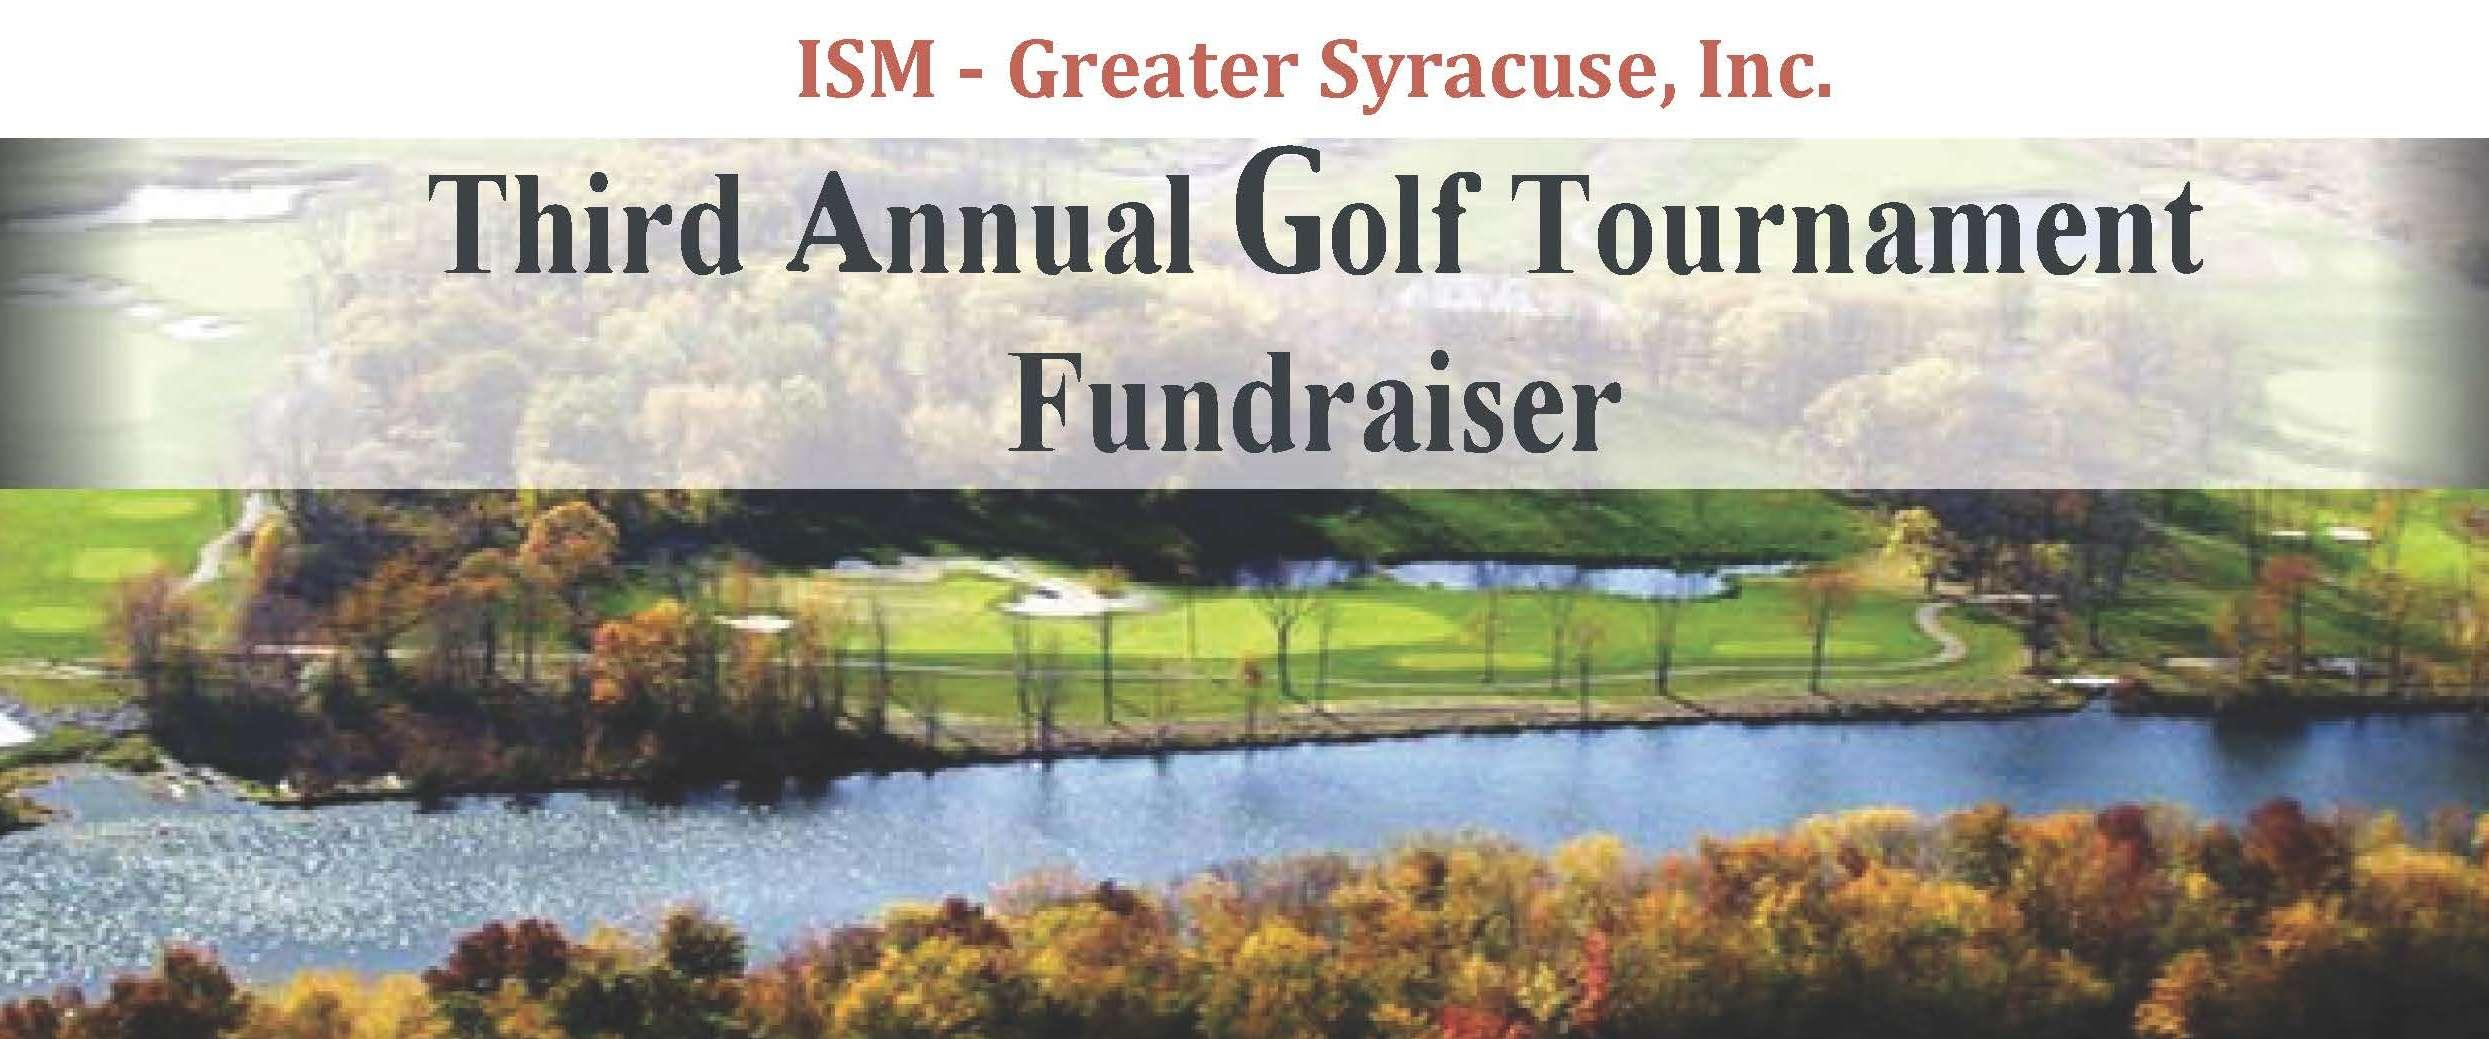 ISM Greater Syracuse 3rd Annual Fundraiser Golf Tournament